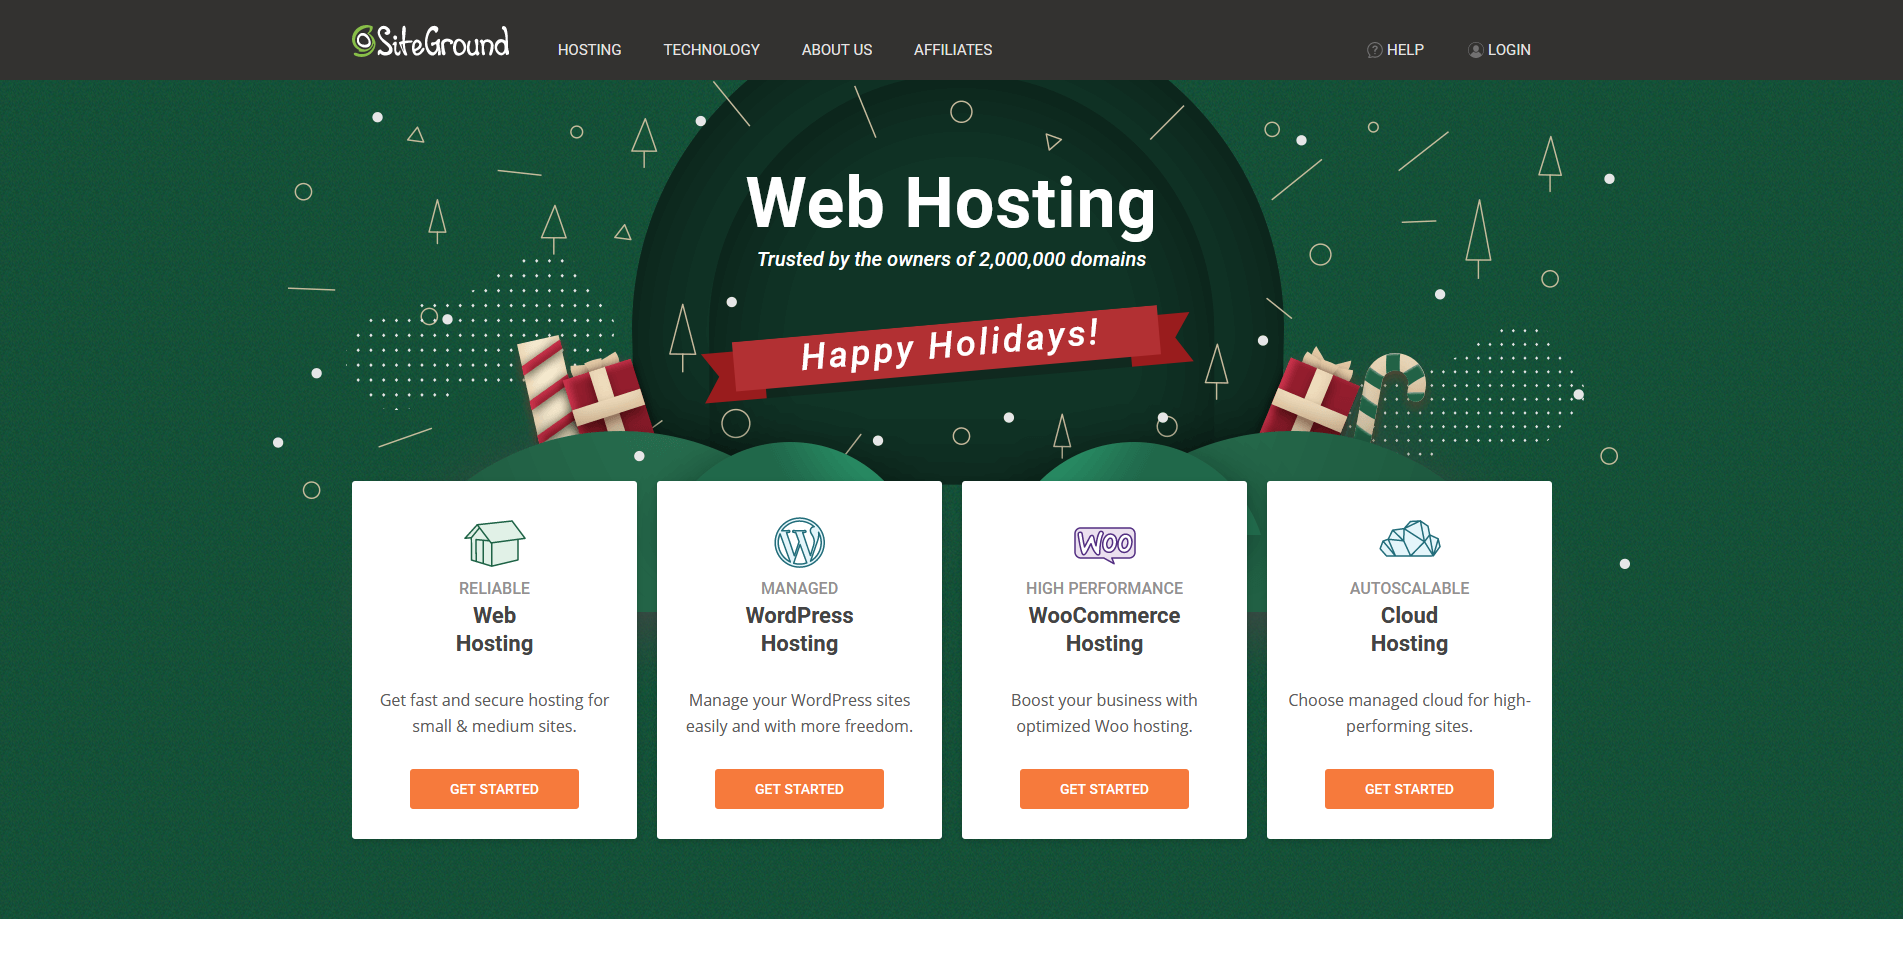 SiteGround Managed Web Hosting